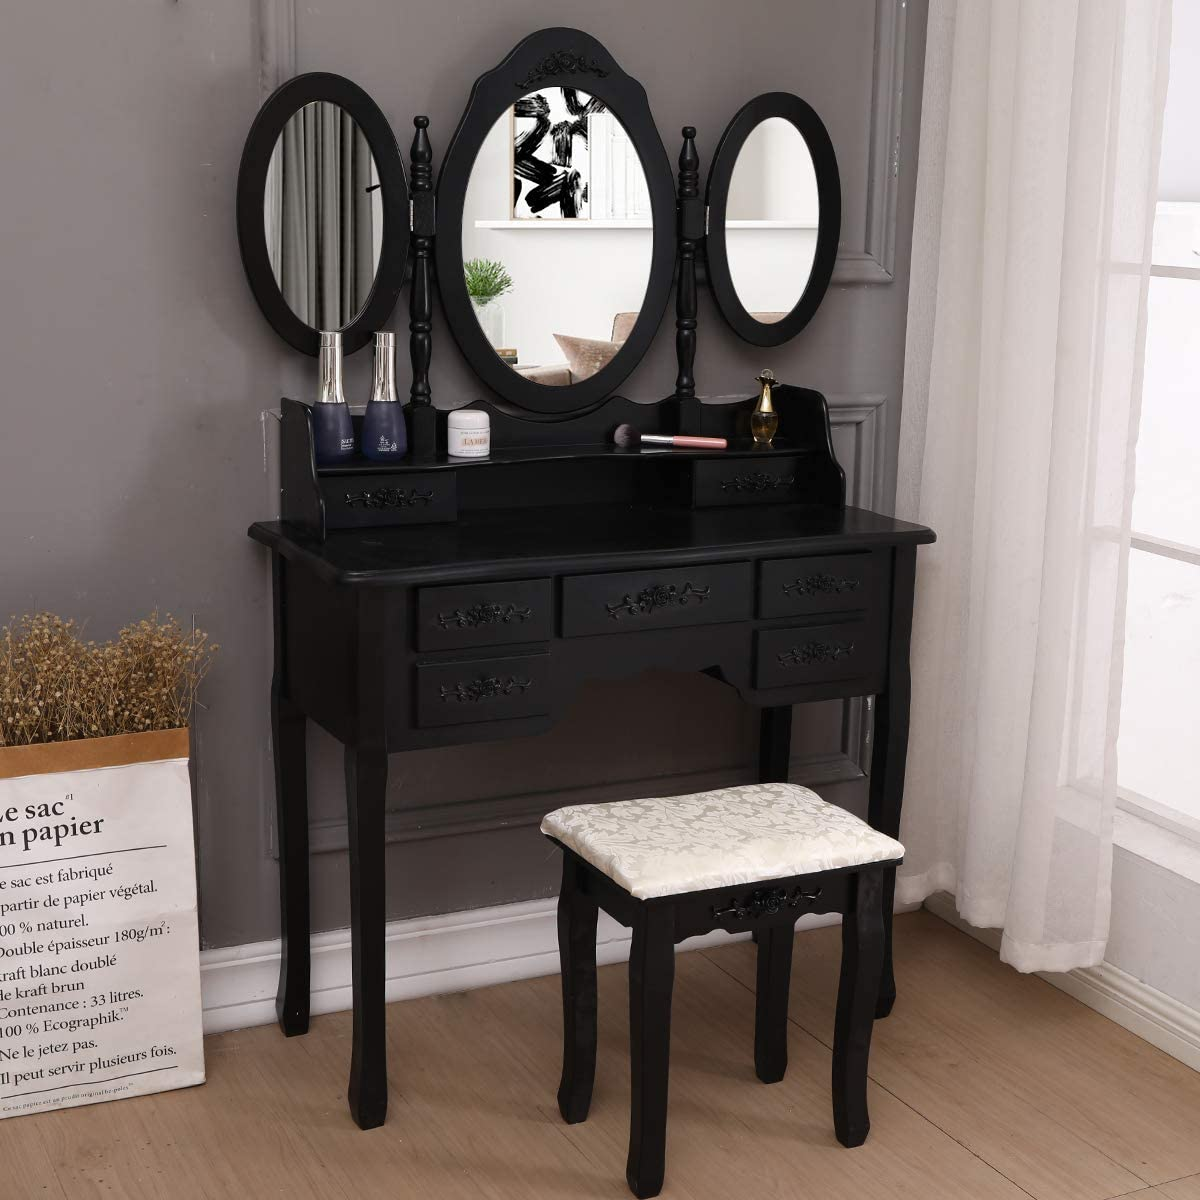 Vanity Set Tri Folding Dressing Table,7 Drawers,Oval Mirror Wood Bathroom Makeup Table Set with Cushioned Stool,Black